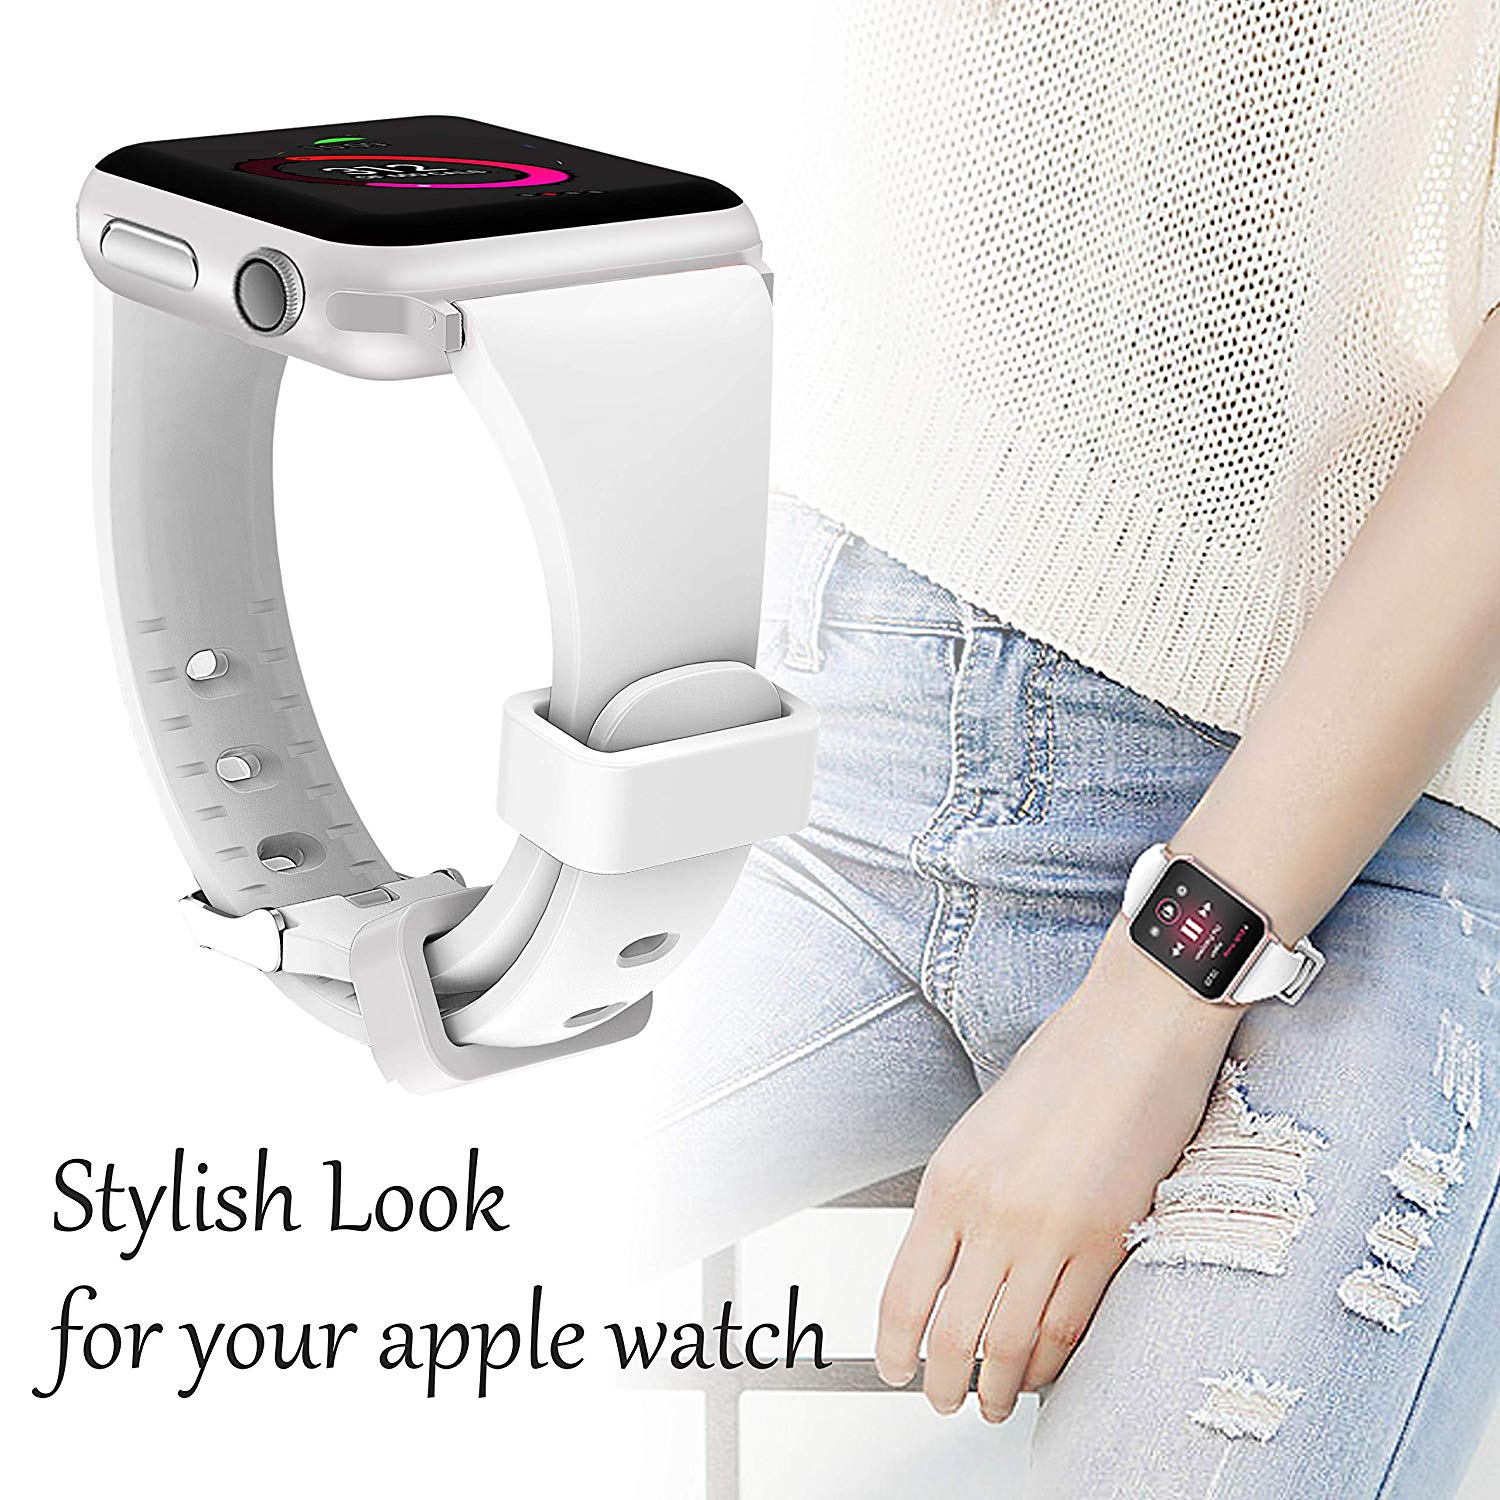 Apple watch slim band